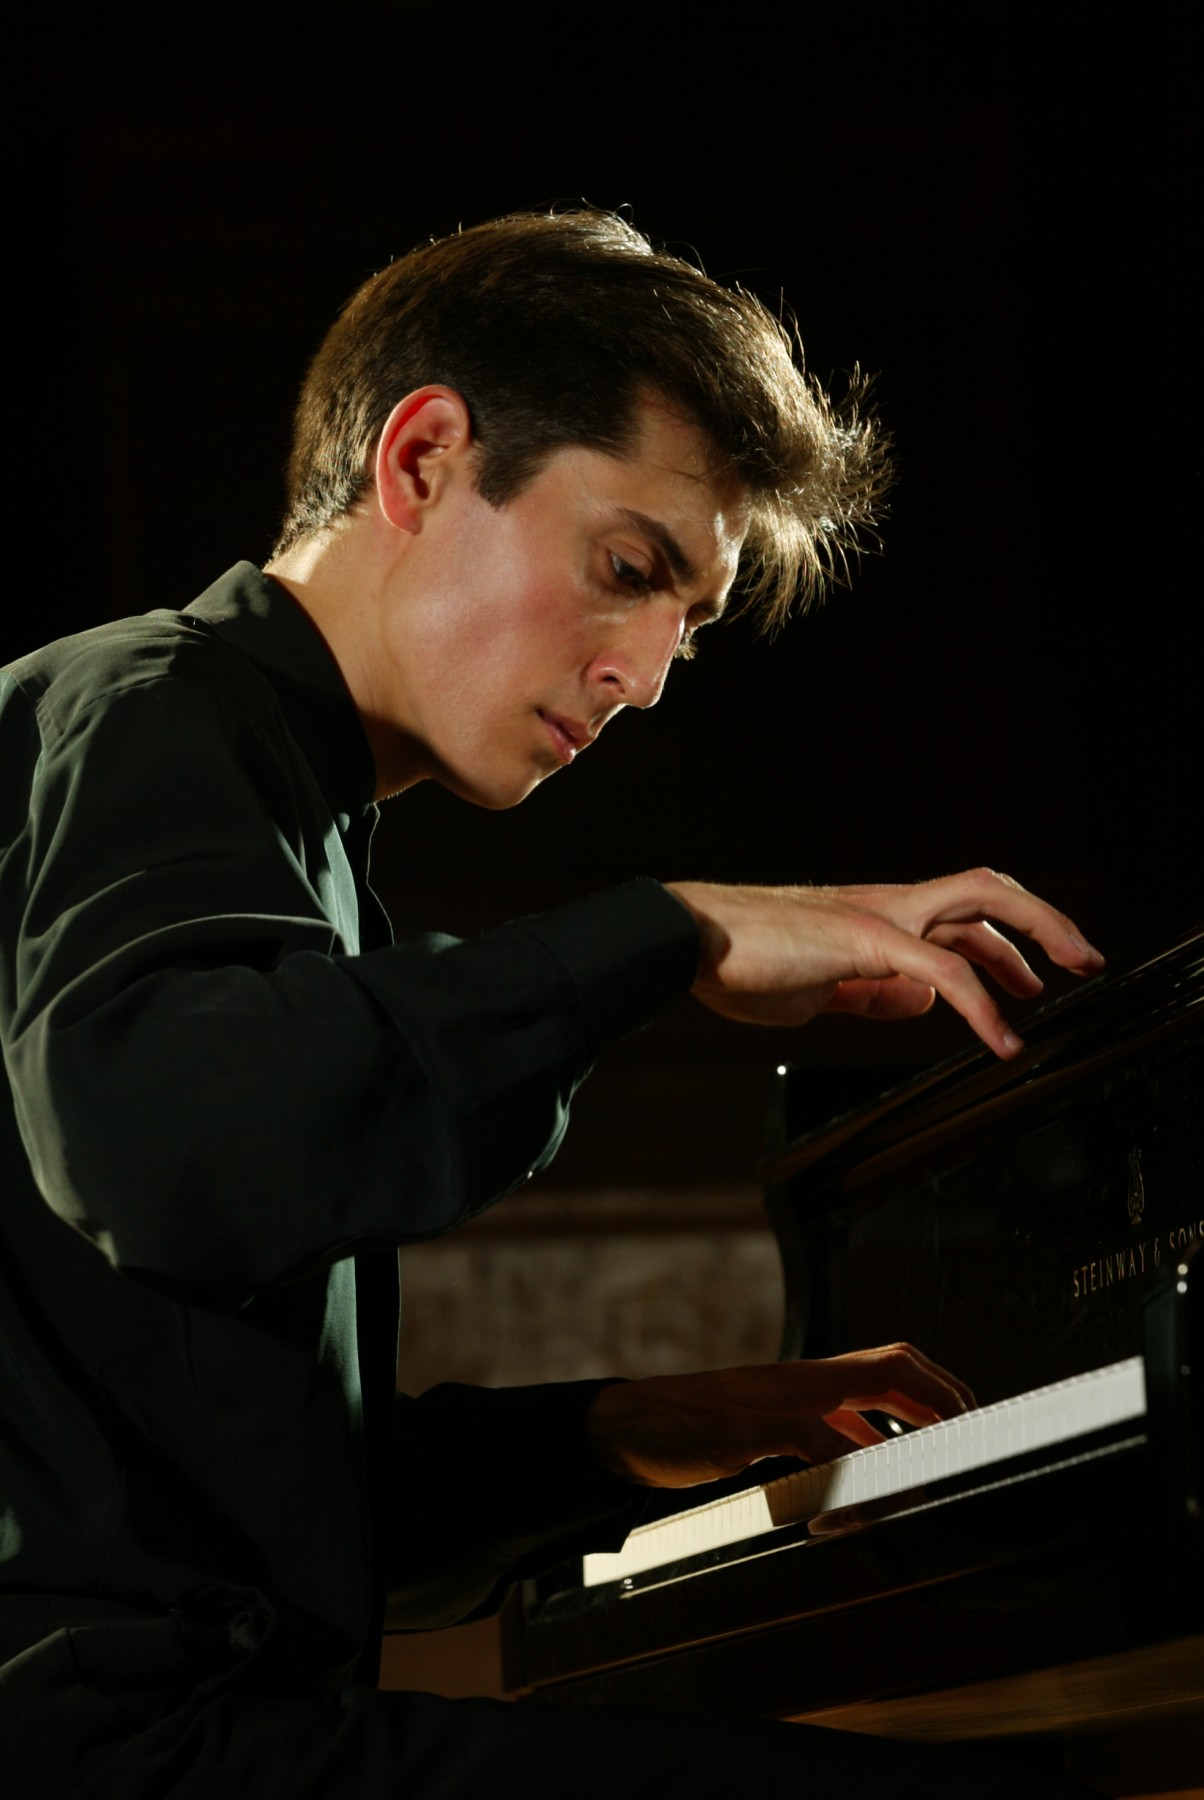 Yevgeny Sudbin at the piano